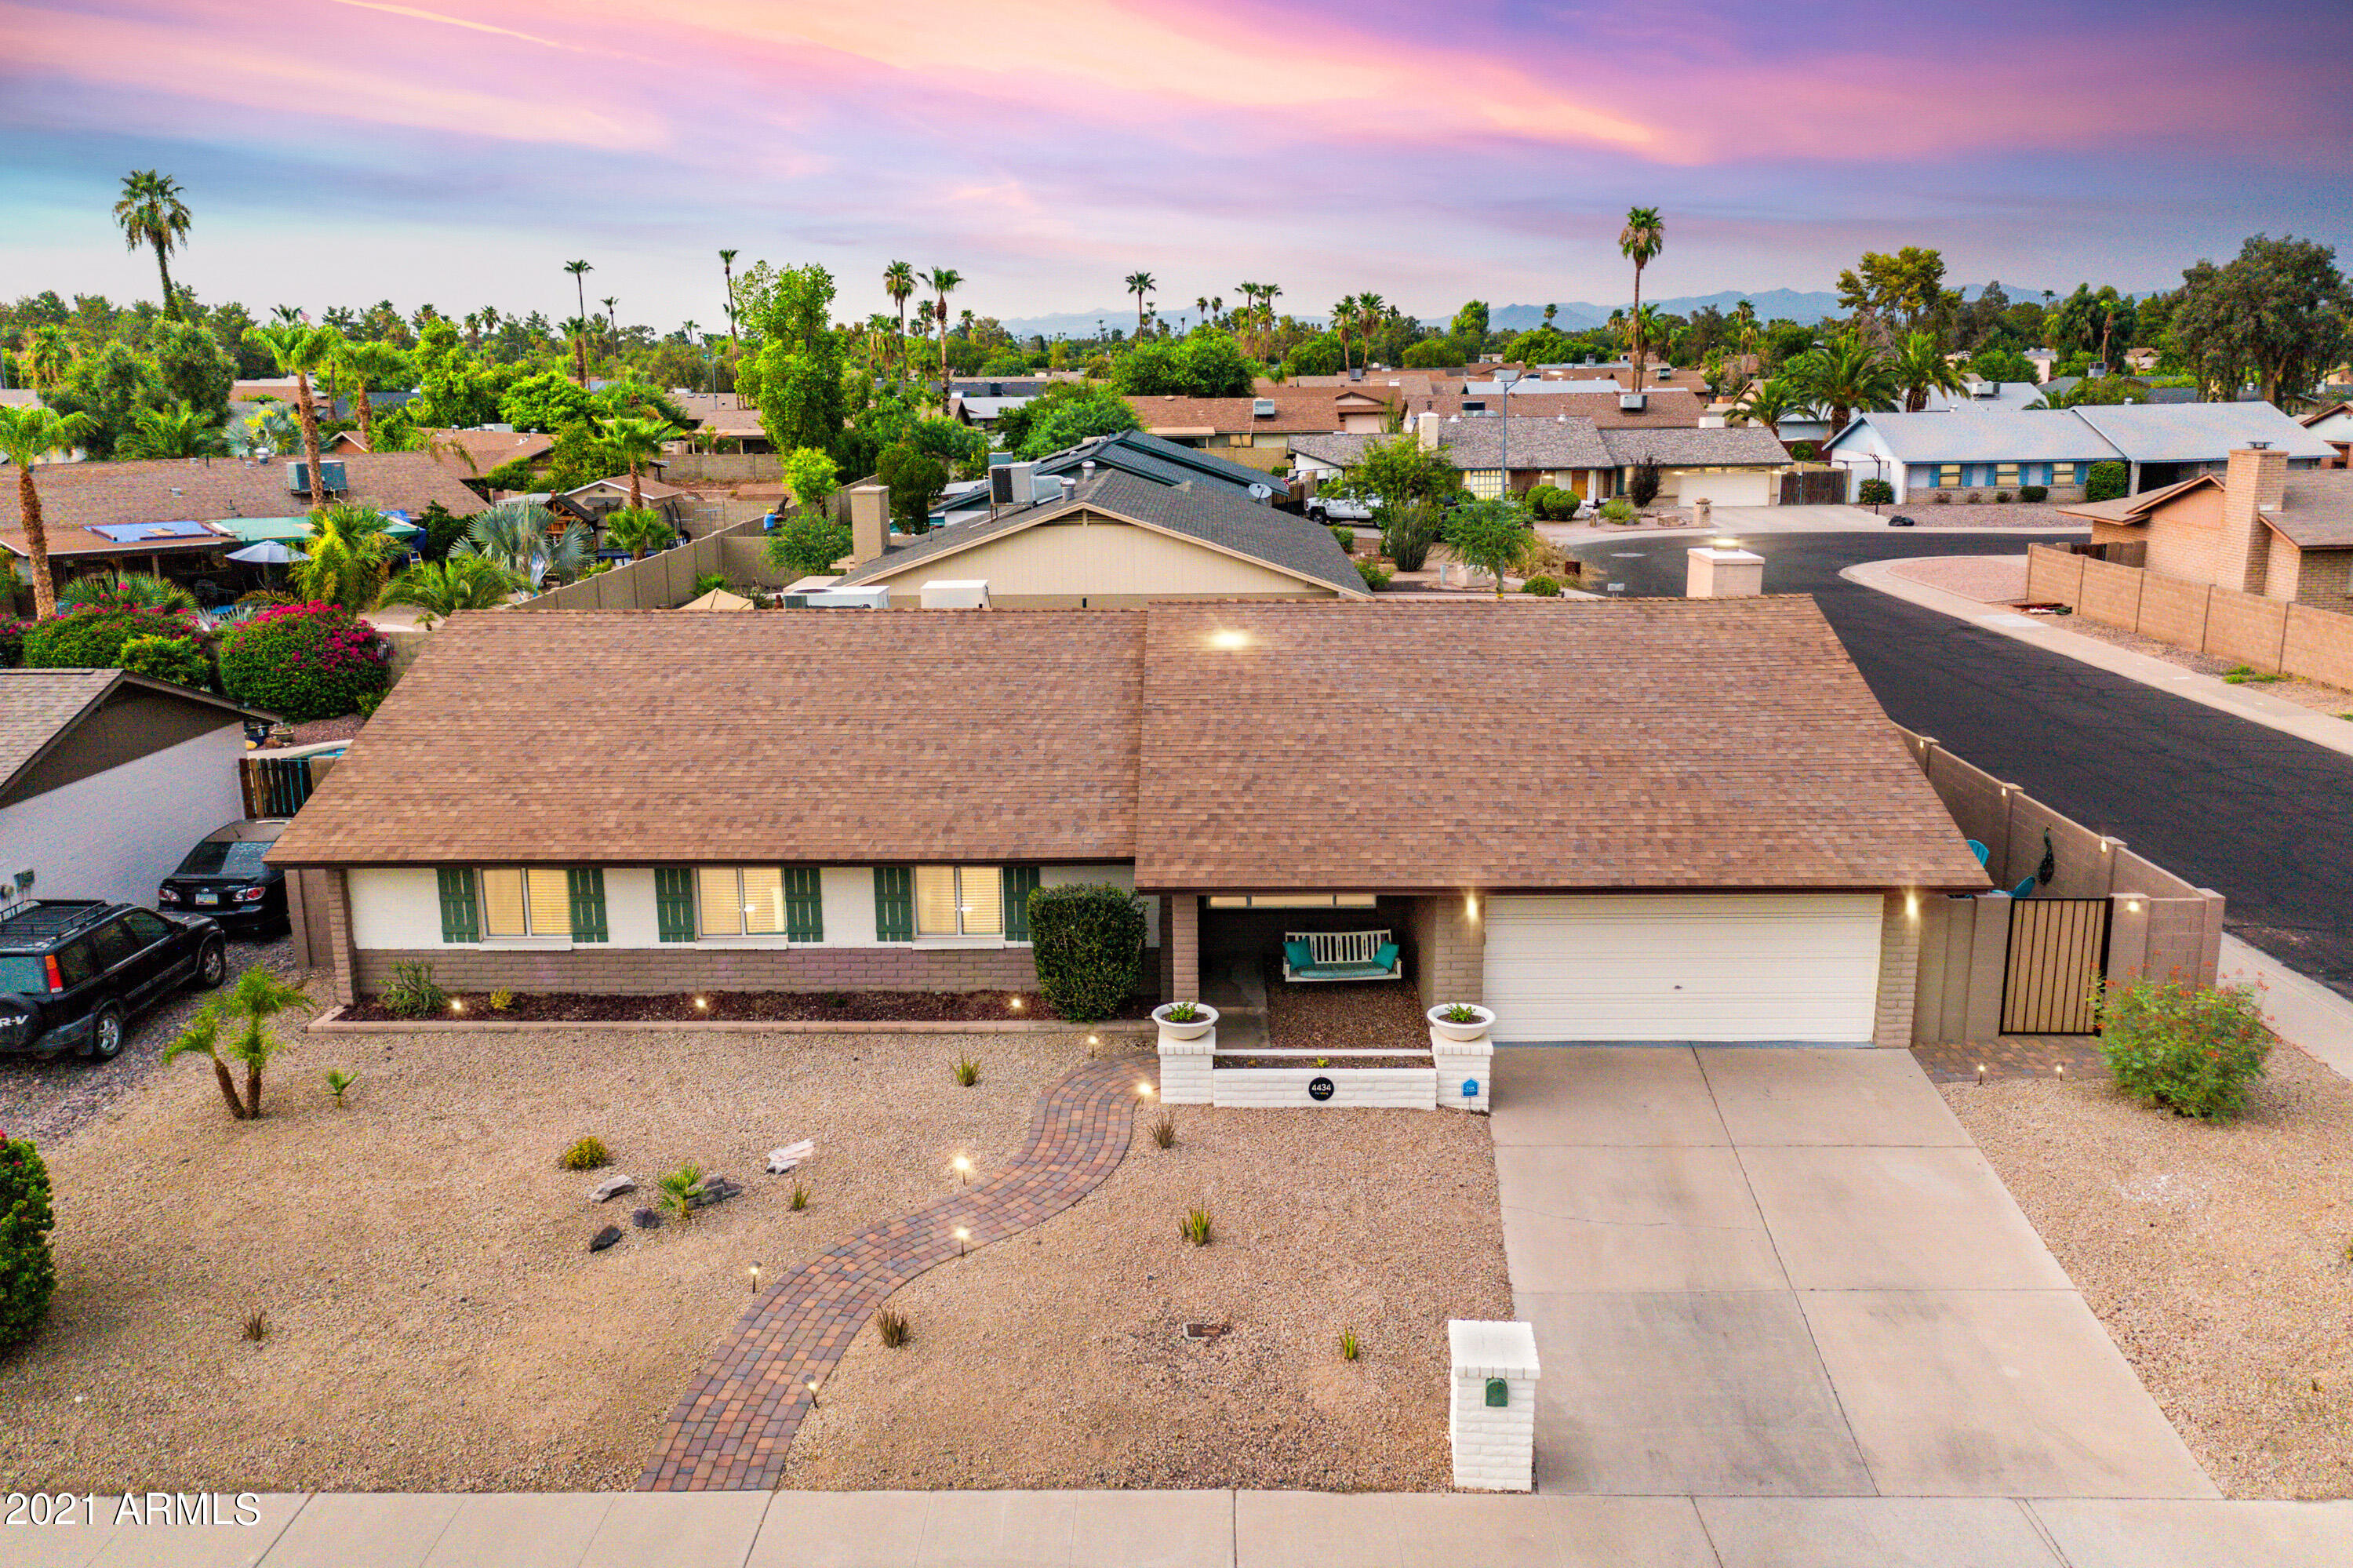 4434 E Pershing Avenue, Phoenix, AZ 85032, 4 Bedrooms Bedrooms, ,Residential Lease,For Rent,4434 E Pershing Avenue,6280870